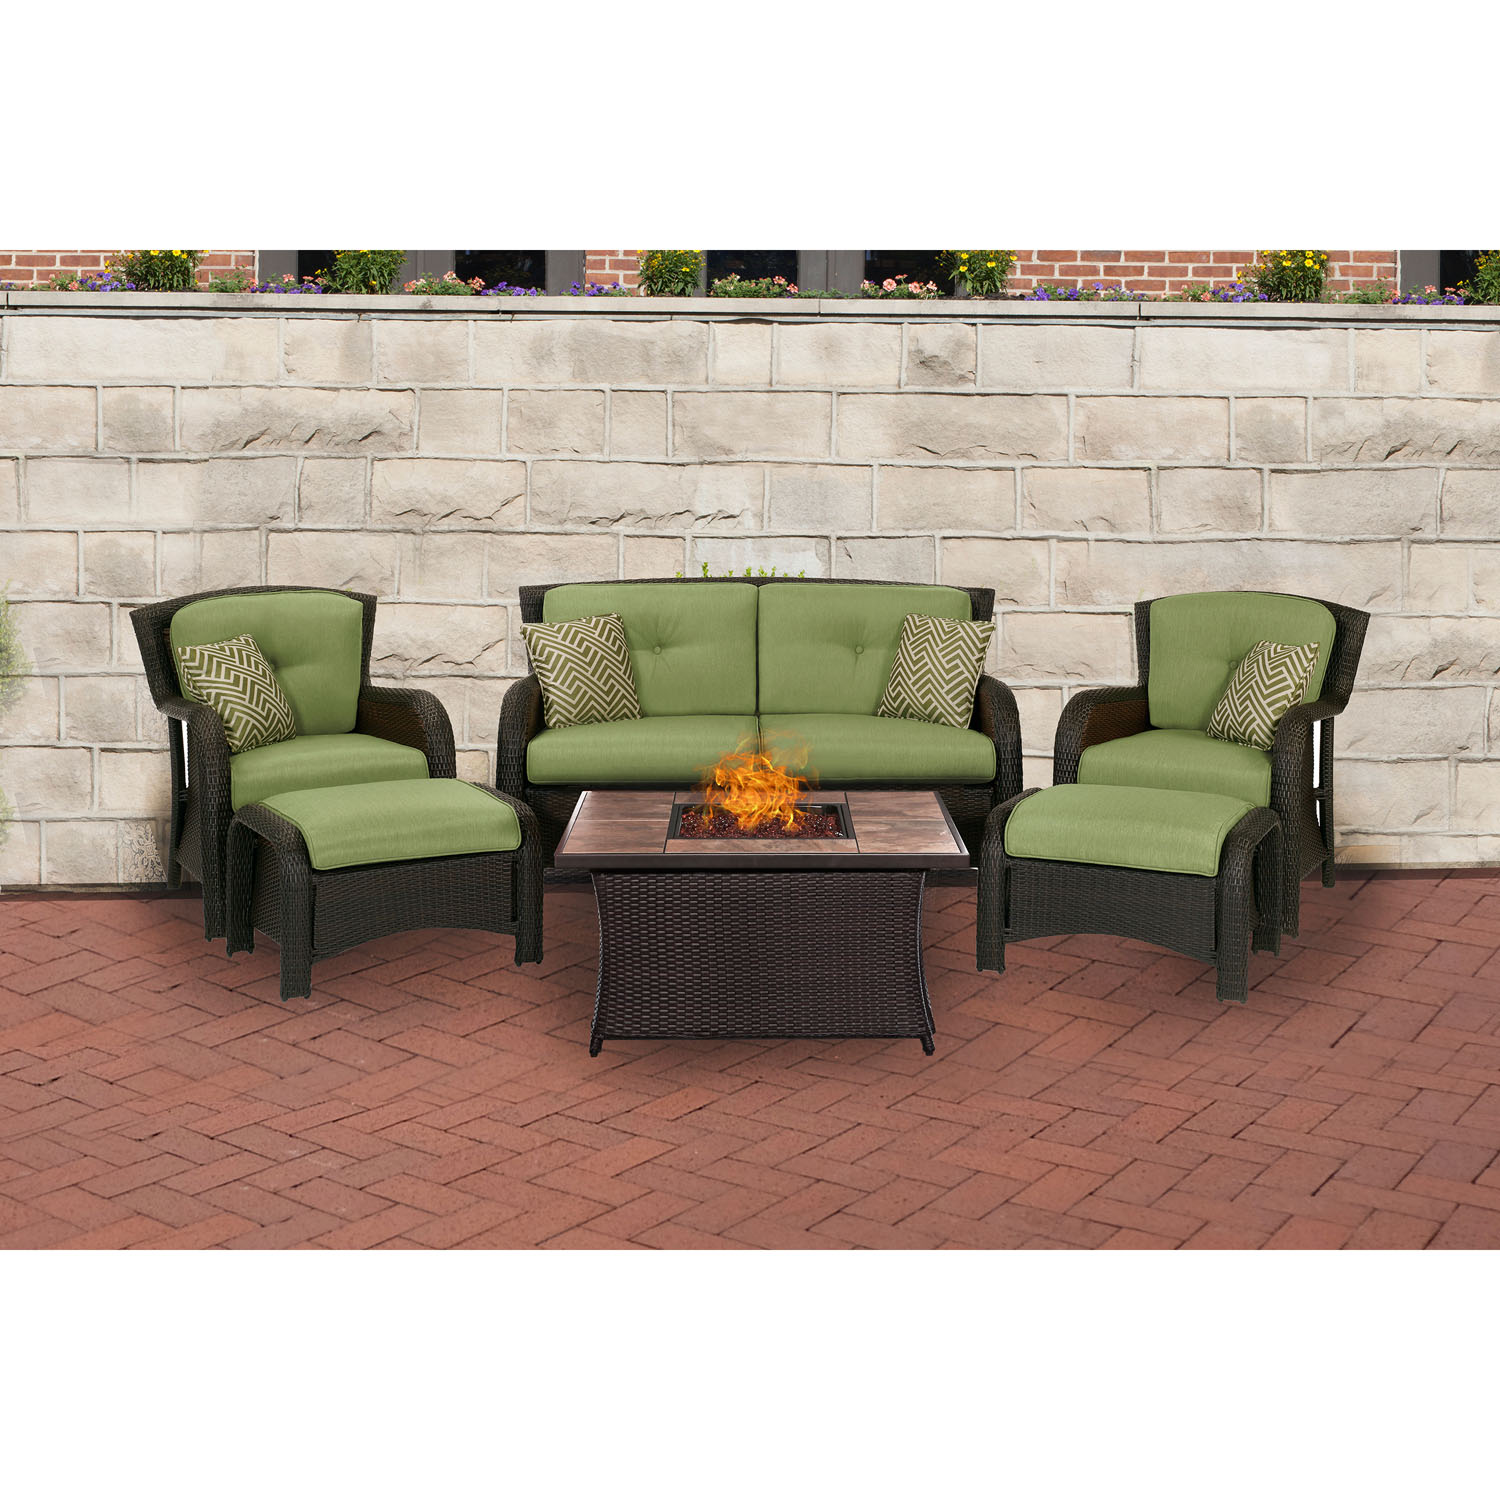 Hanover Strathmere 6-Piece Fire Pit Lounge Set with Glazed Faux-Wood Tile Top